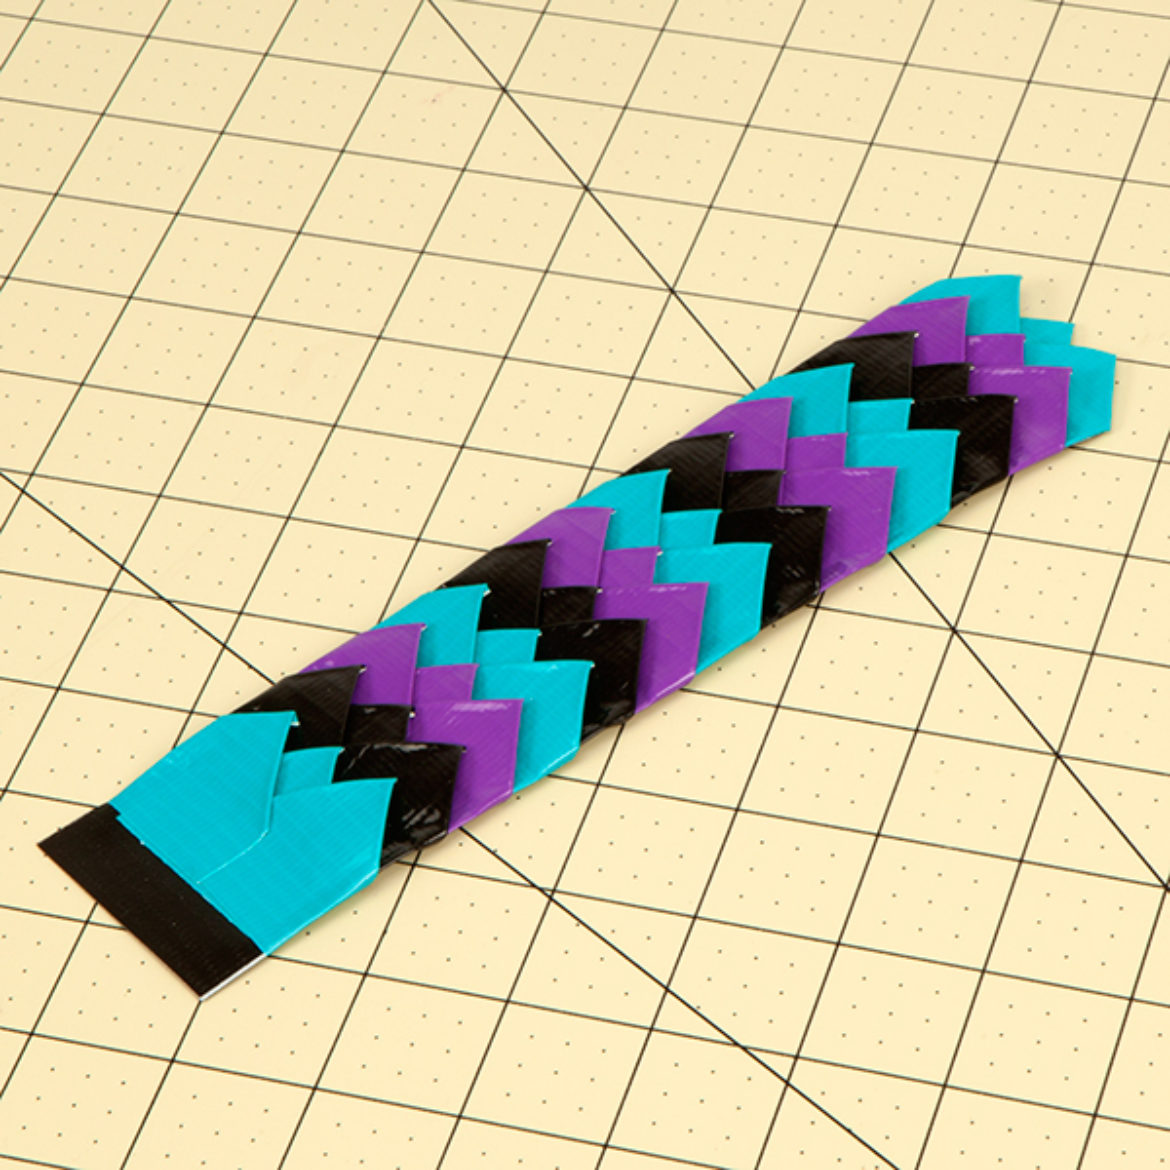 Steps 6-7 repeated with alternating colors until the whole bracelet is covered